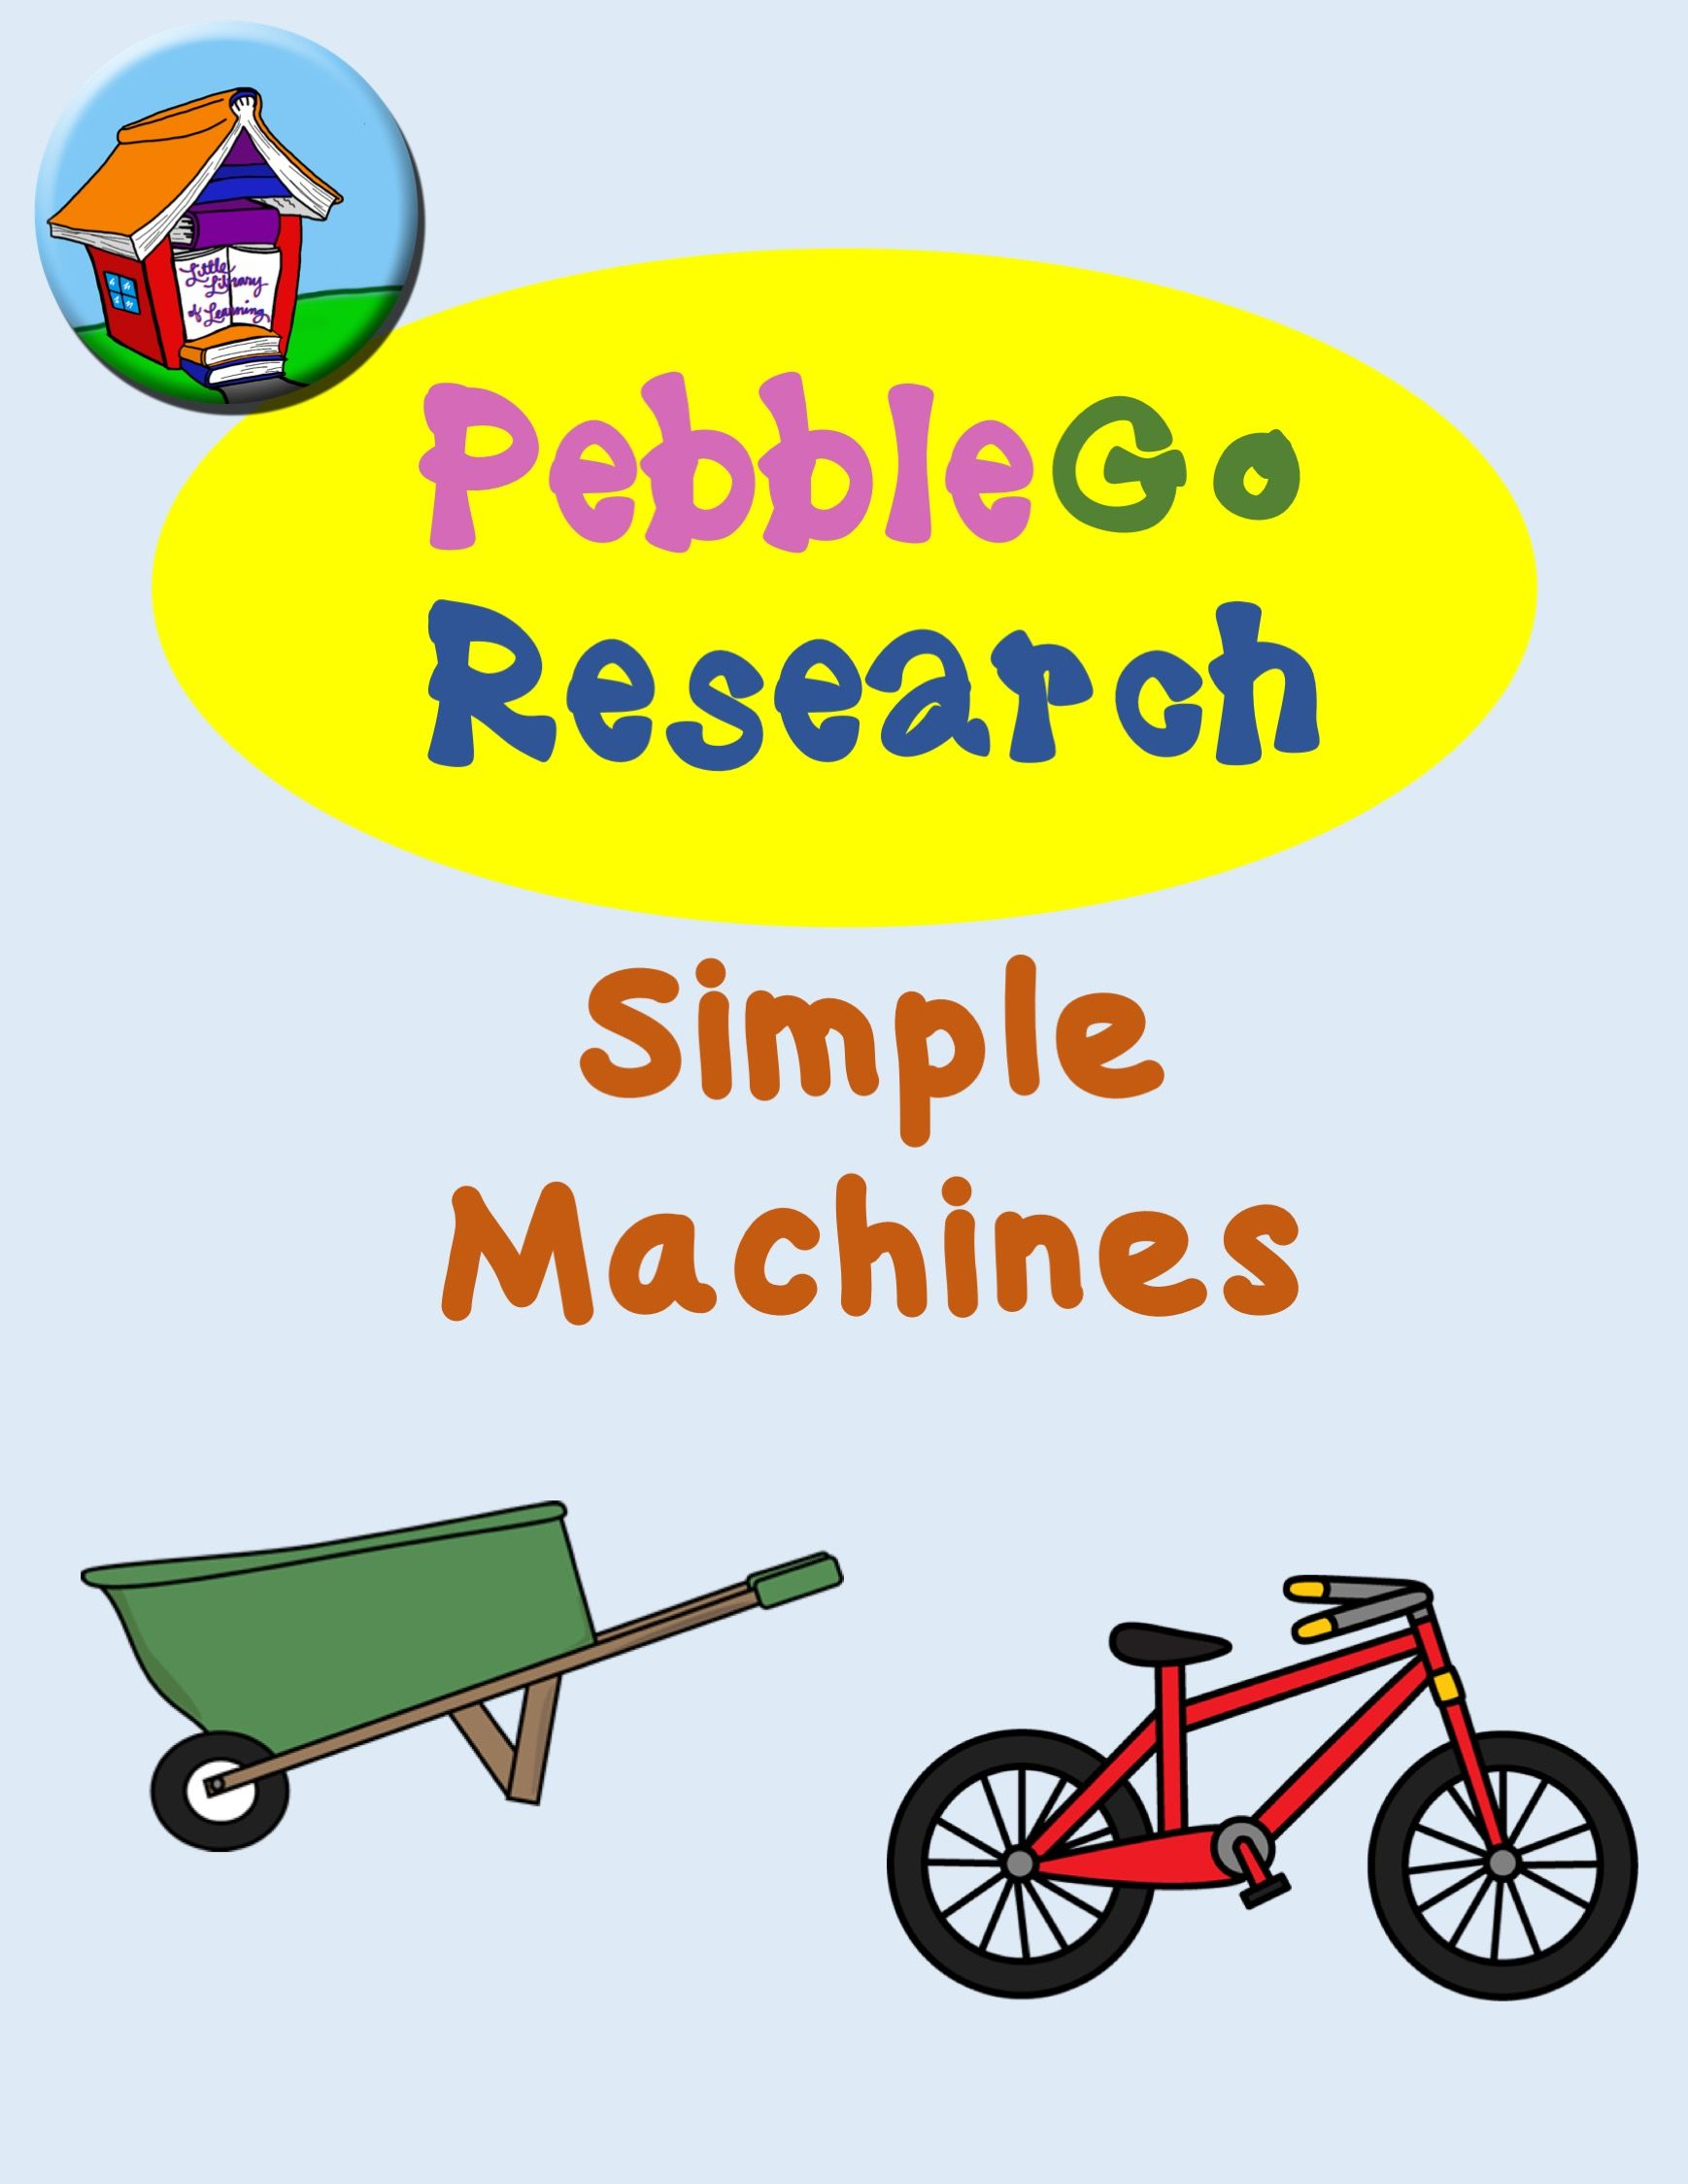 Pebblego Simple Machines Research